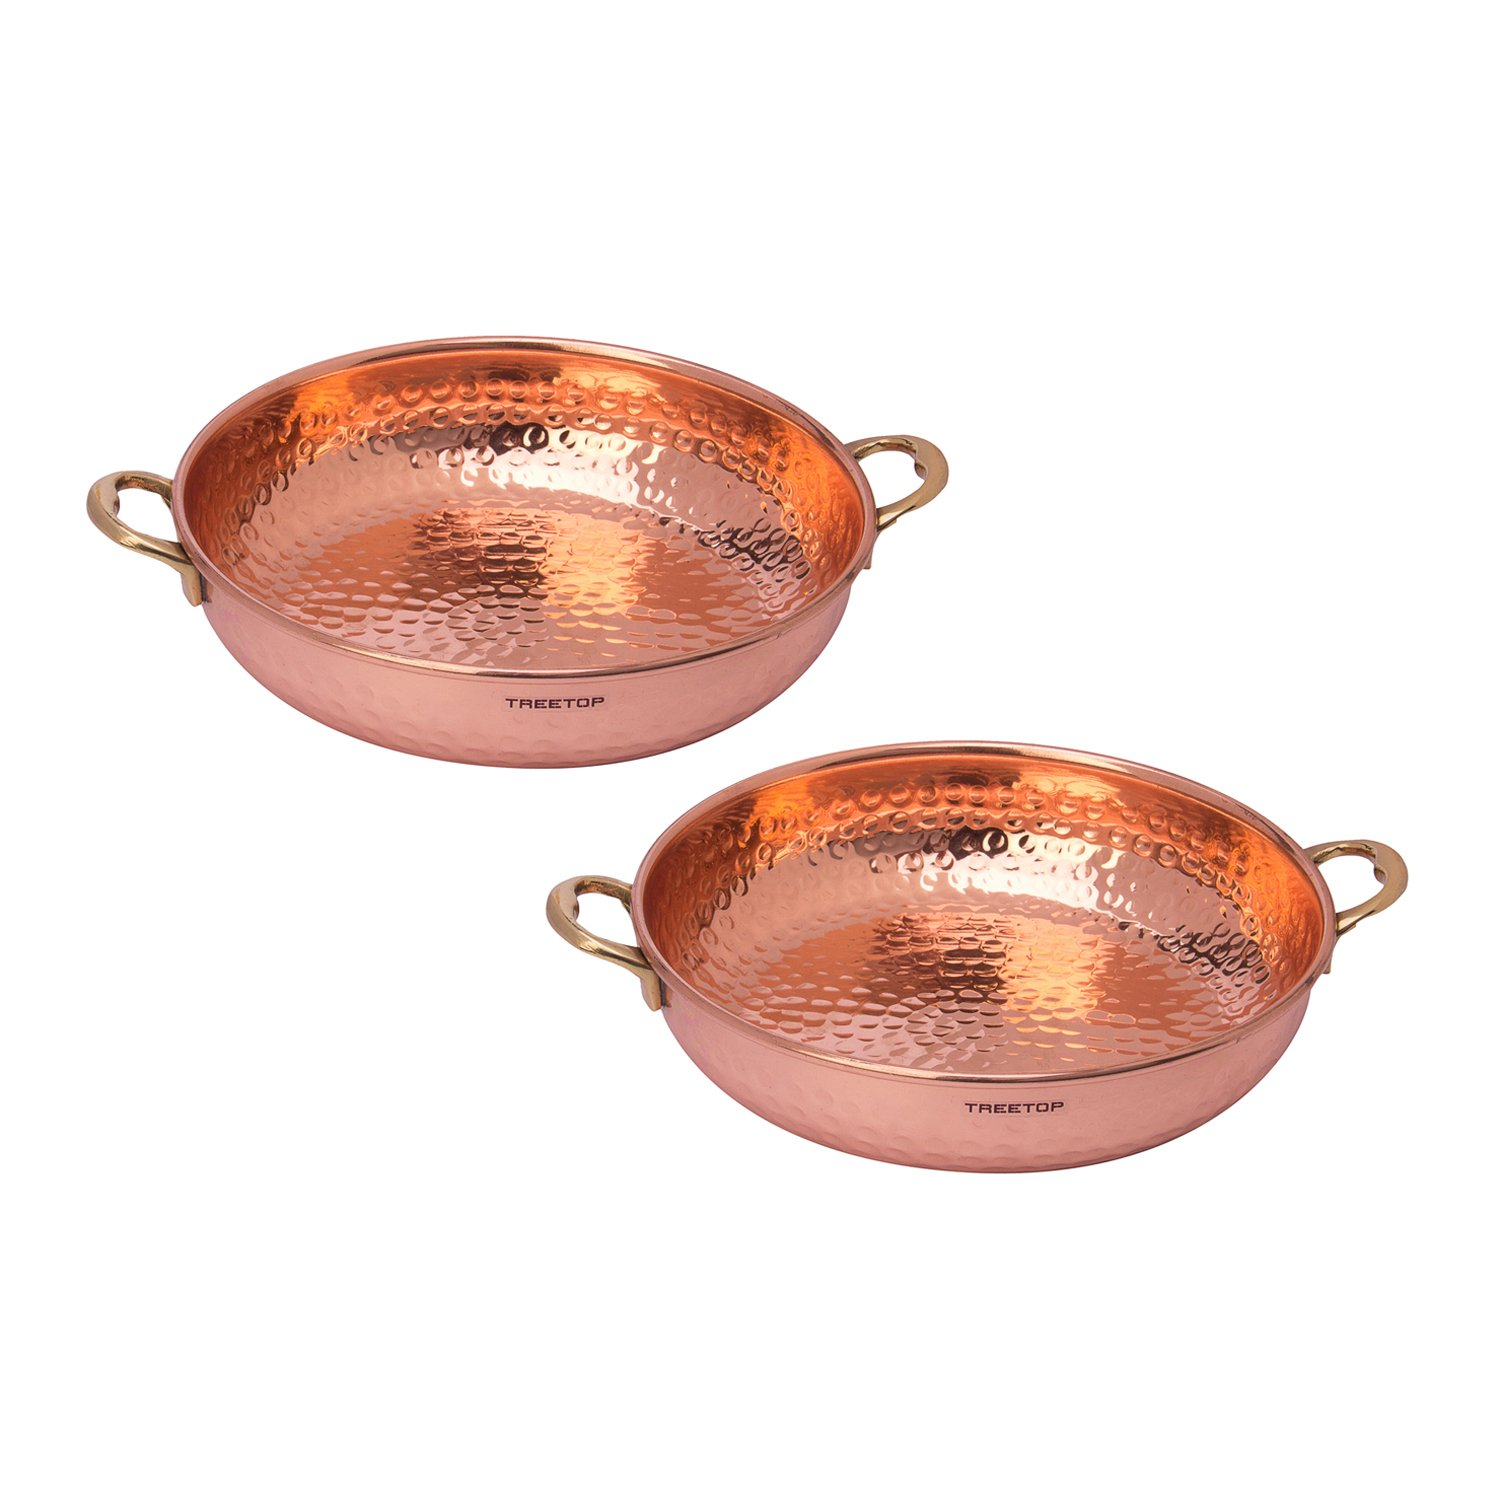 Treetop Copper Bowl for Salads or Dry Snacks -Set of 2 with fork.